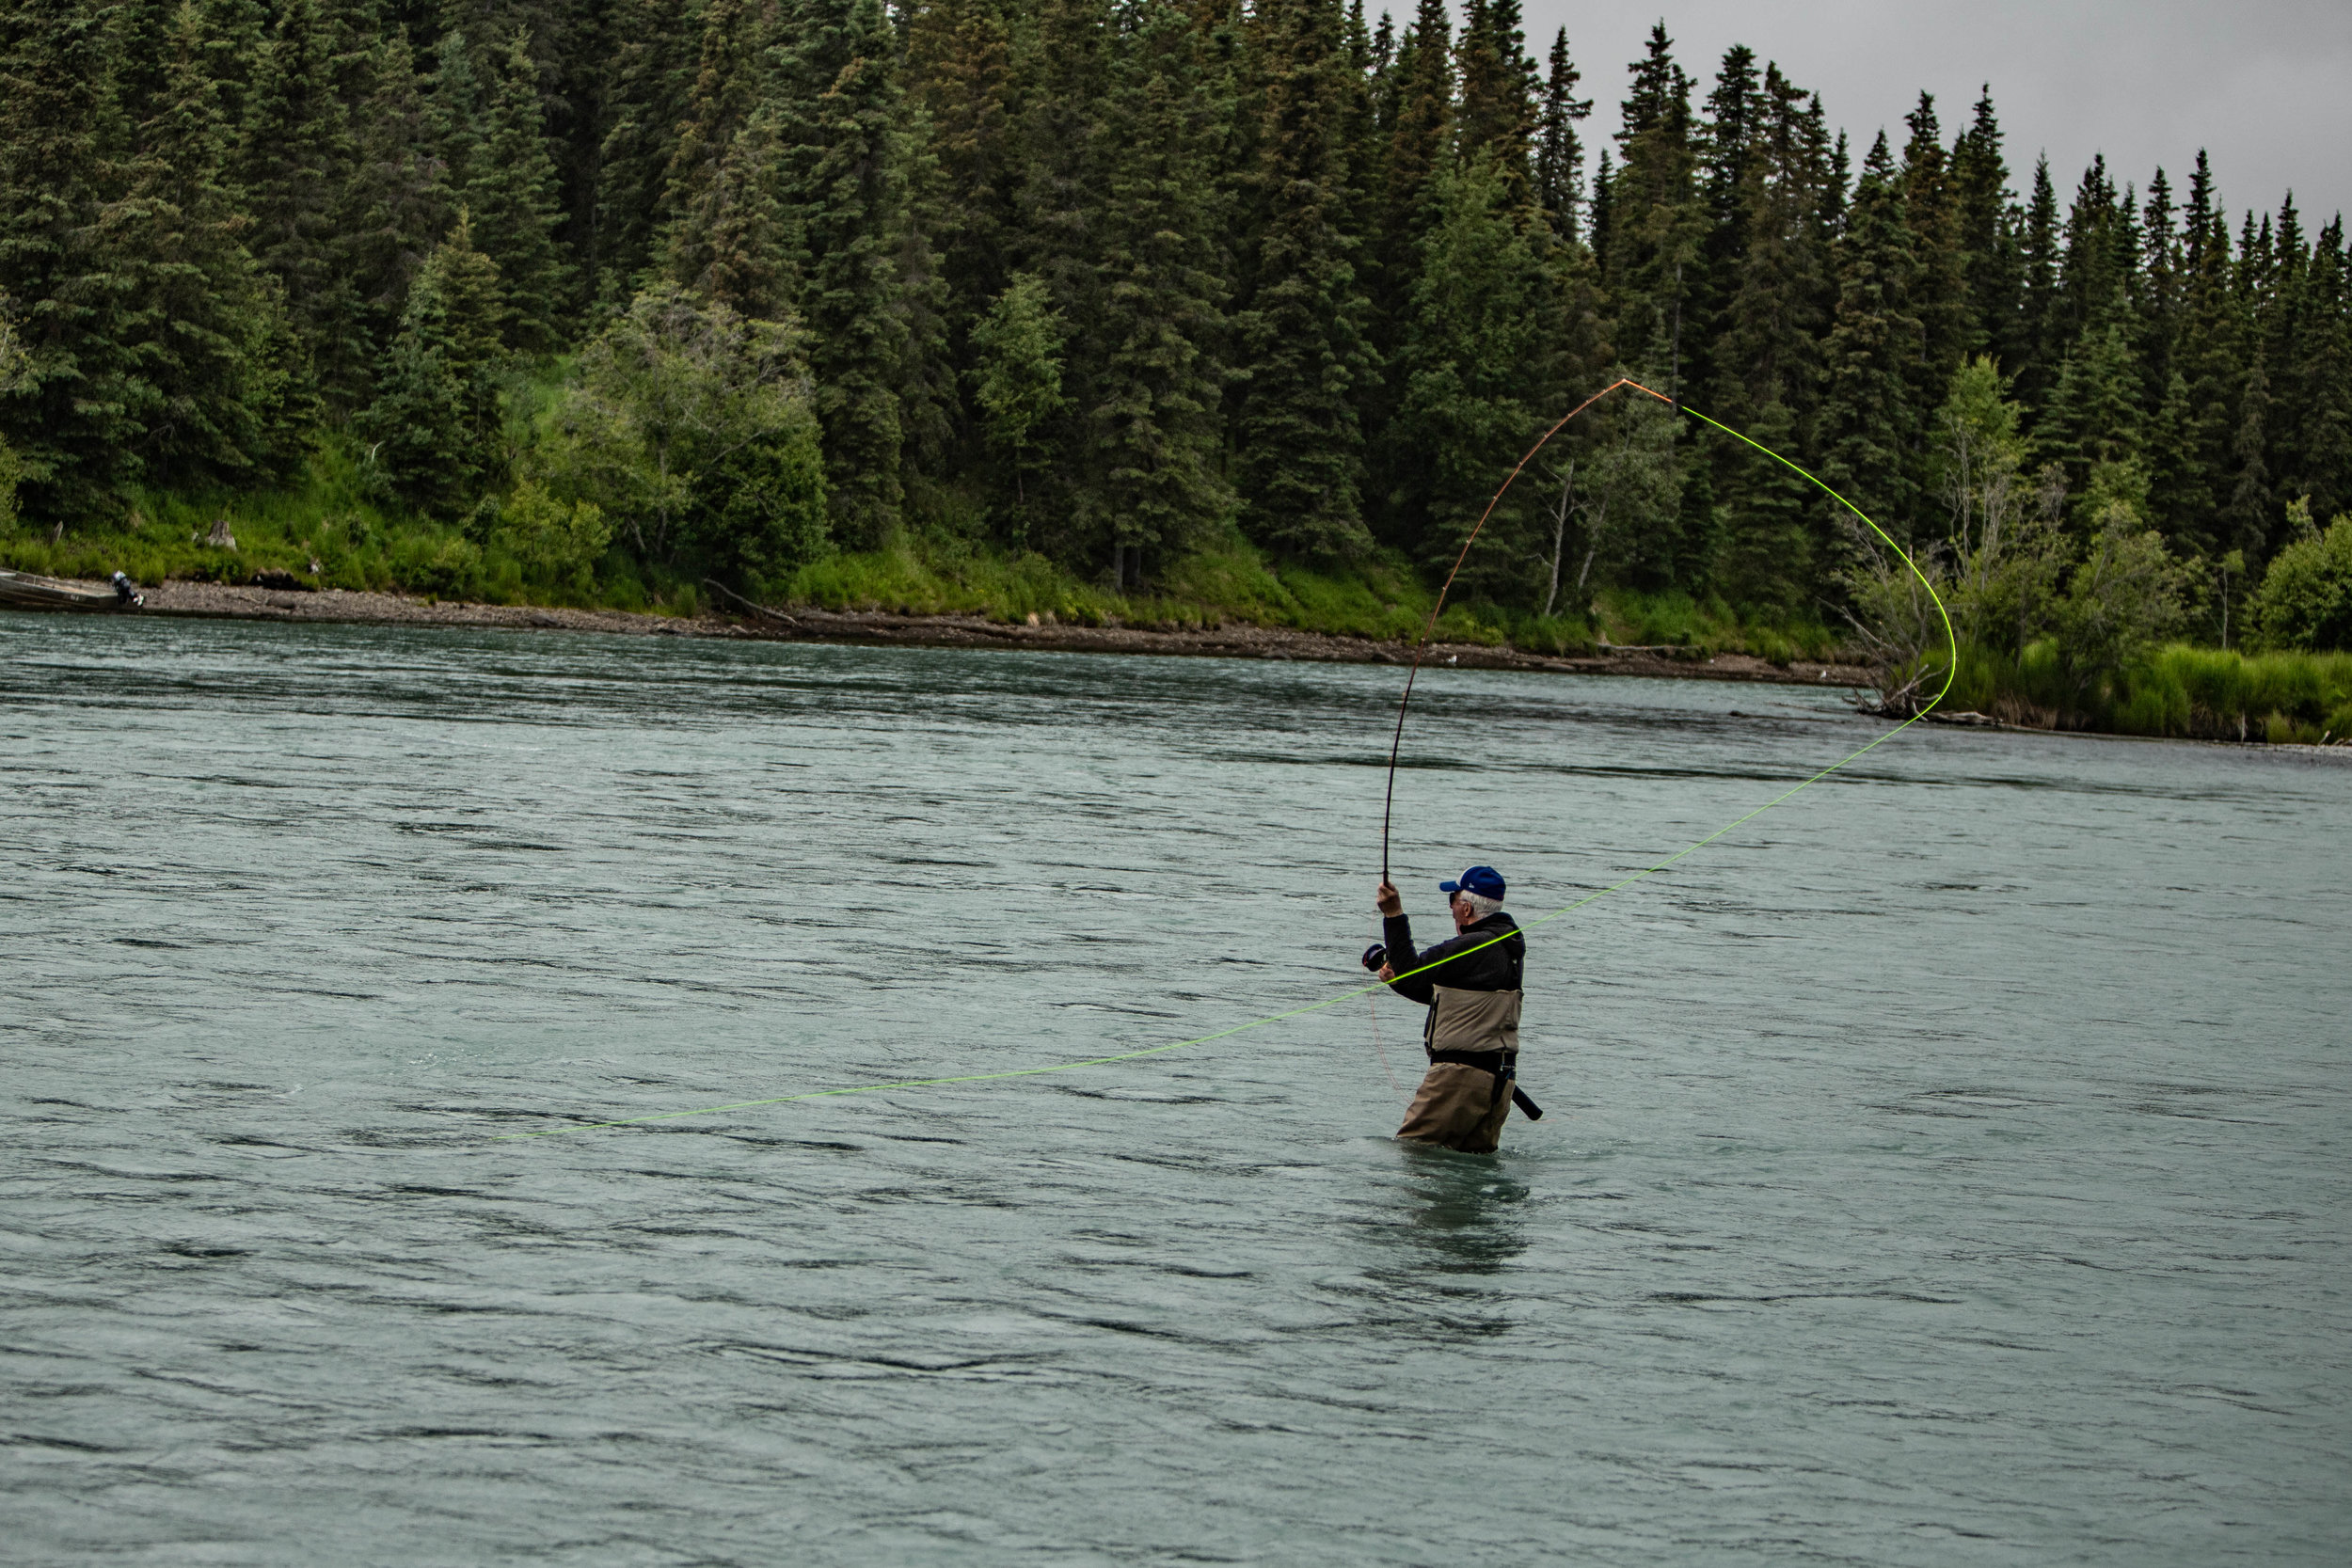 Rich sending a big    spey cast    across the river! We lost count of how many    King Salmon    he hooked this day!